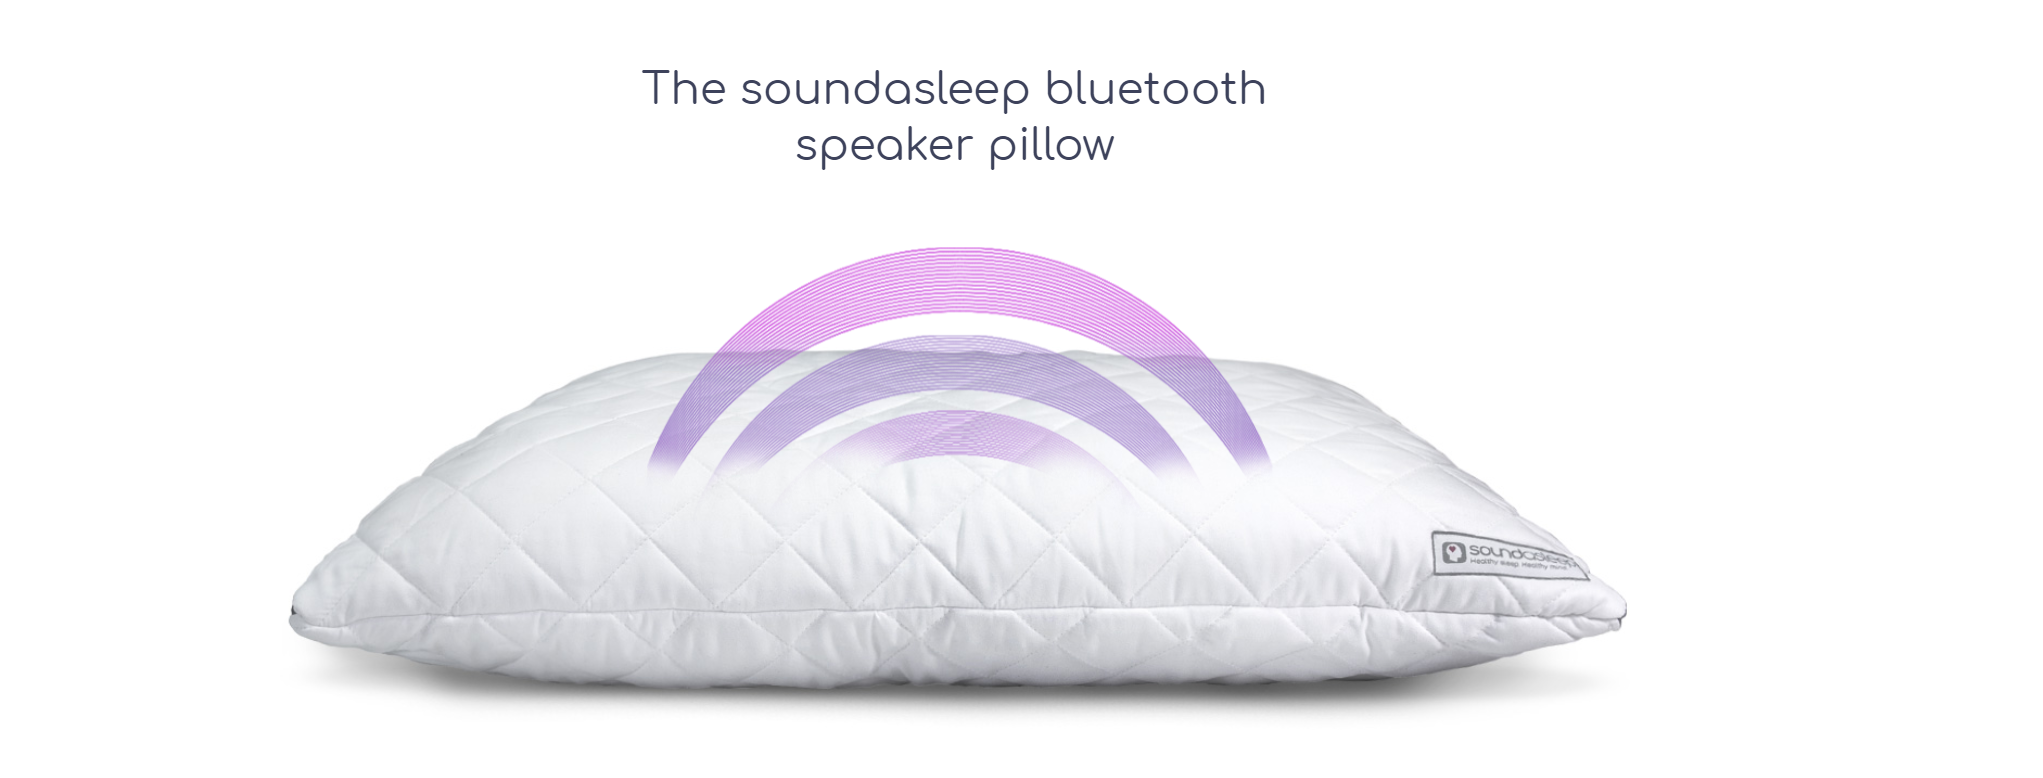 Soundasleep Bluetooth speaker pillow review | Sādhanā